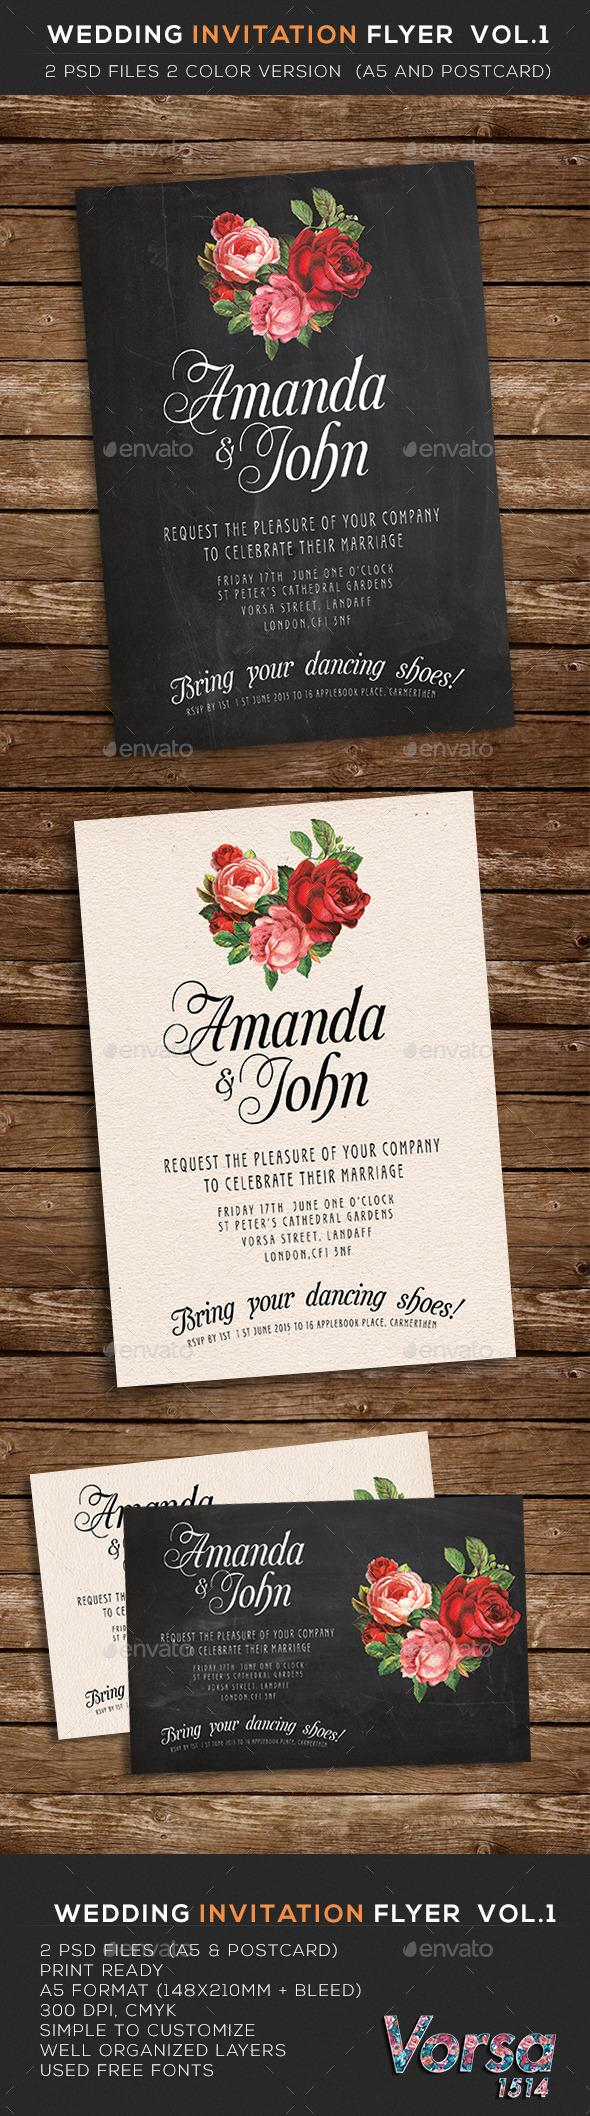 free wedding invitation psd%0A Wedding Invitation Flyer vol